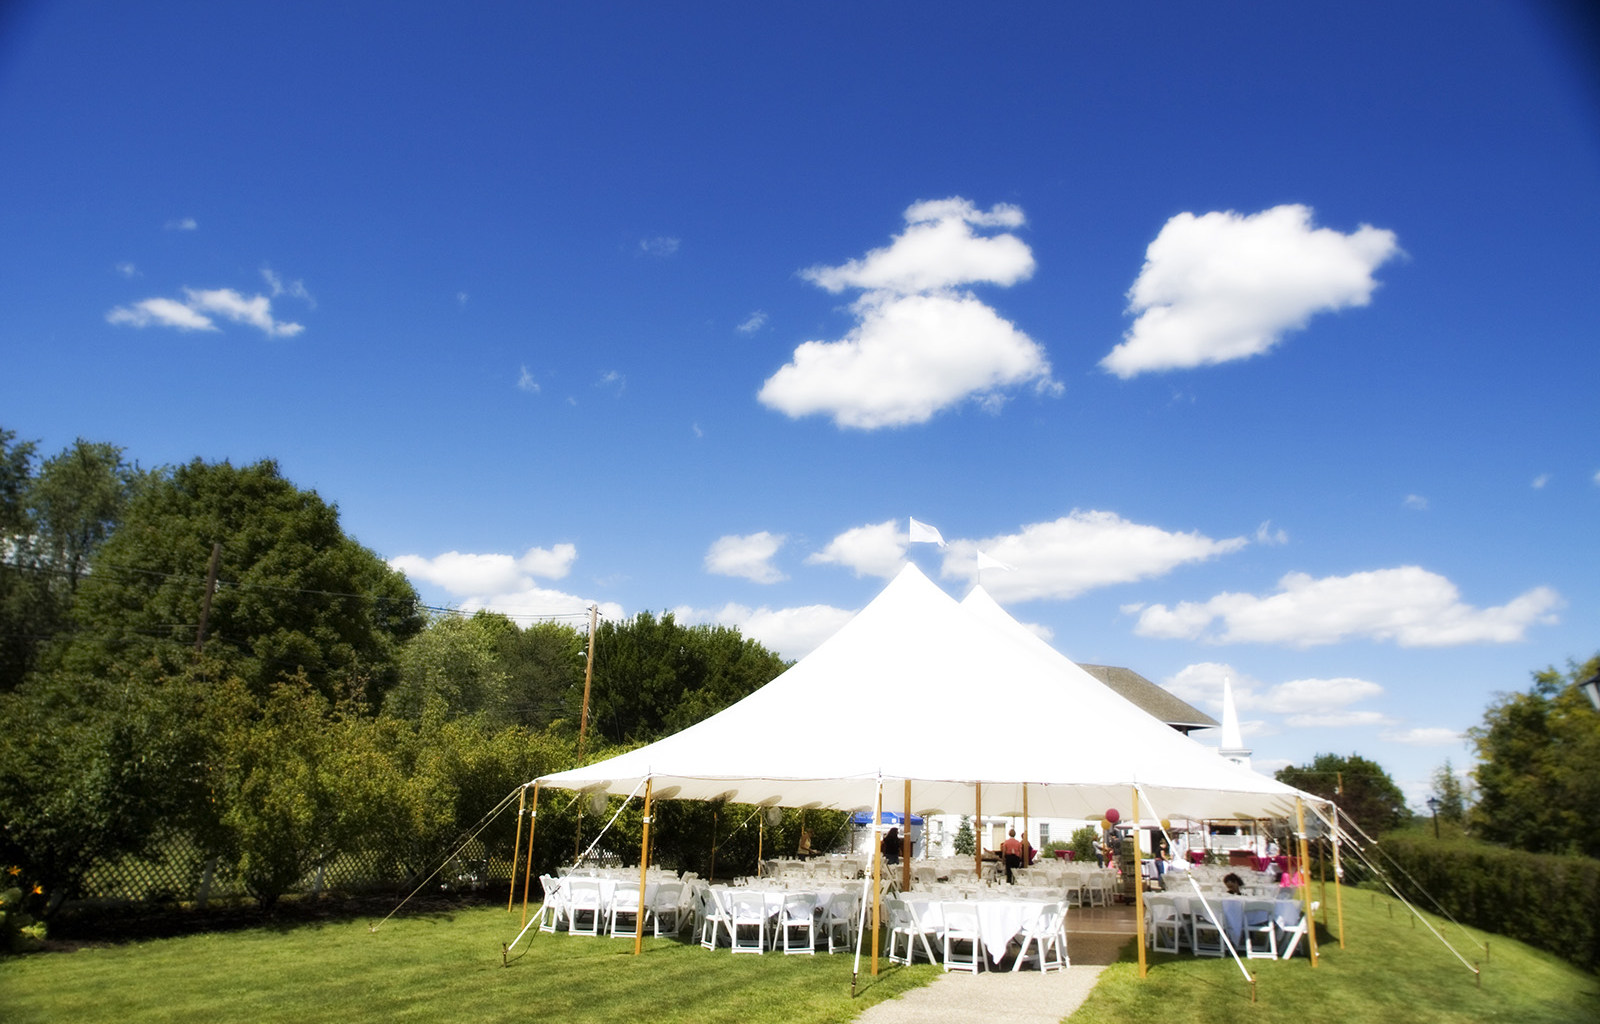 A photo of a large white tent on a grassy lawn with tables and chairs set up underneath